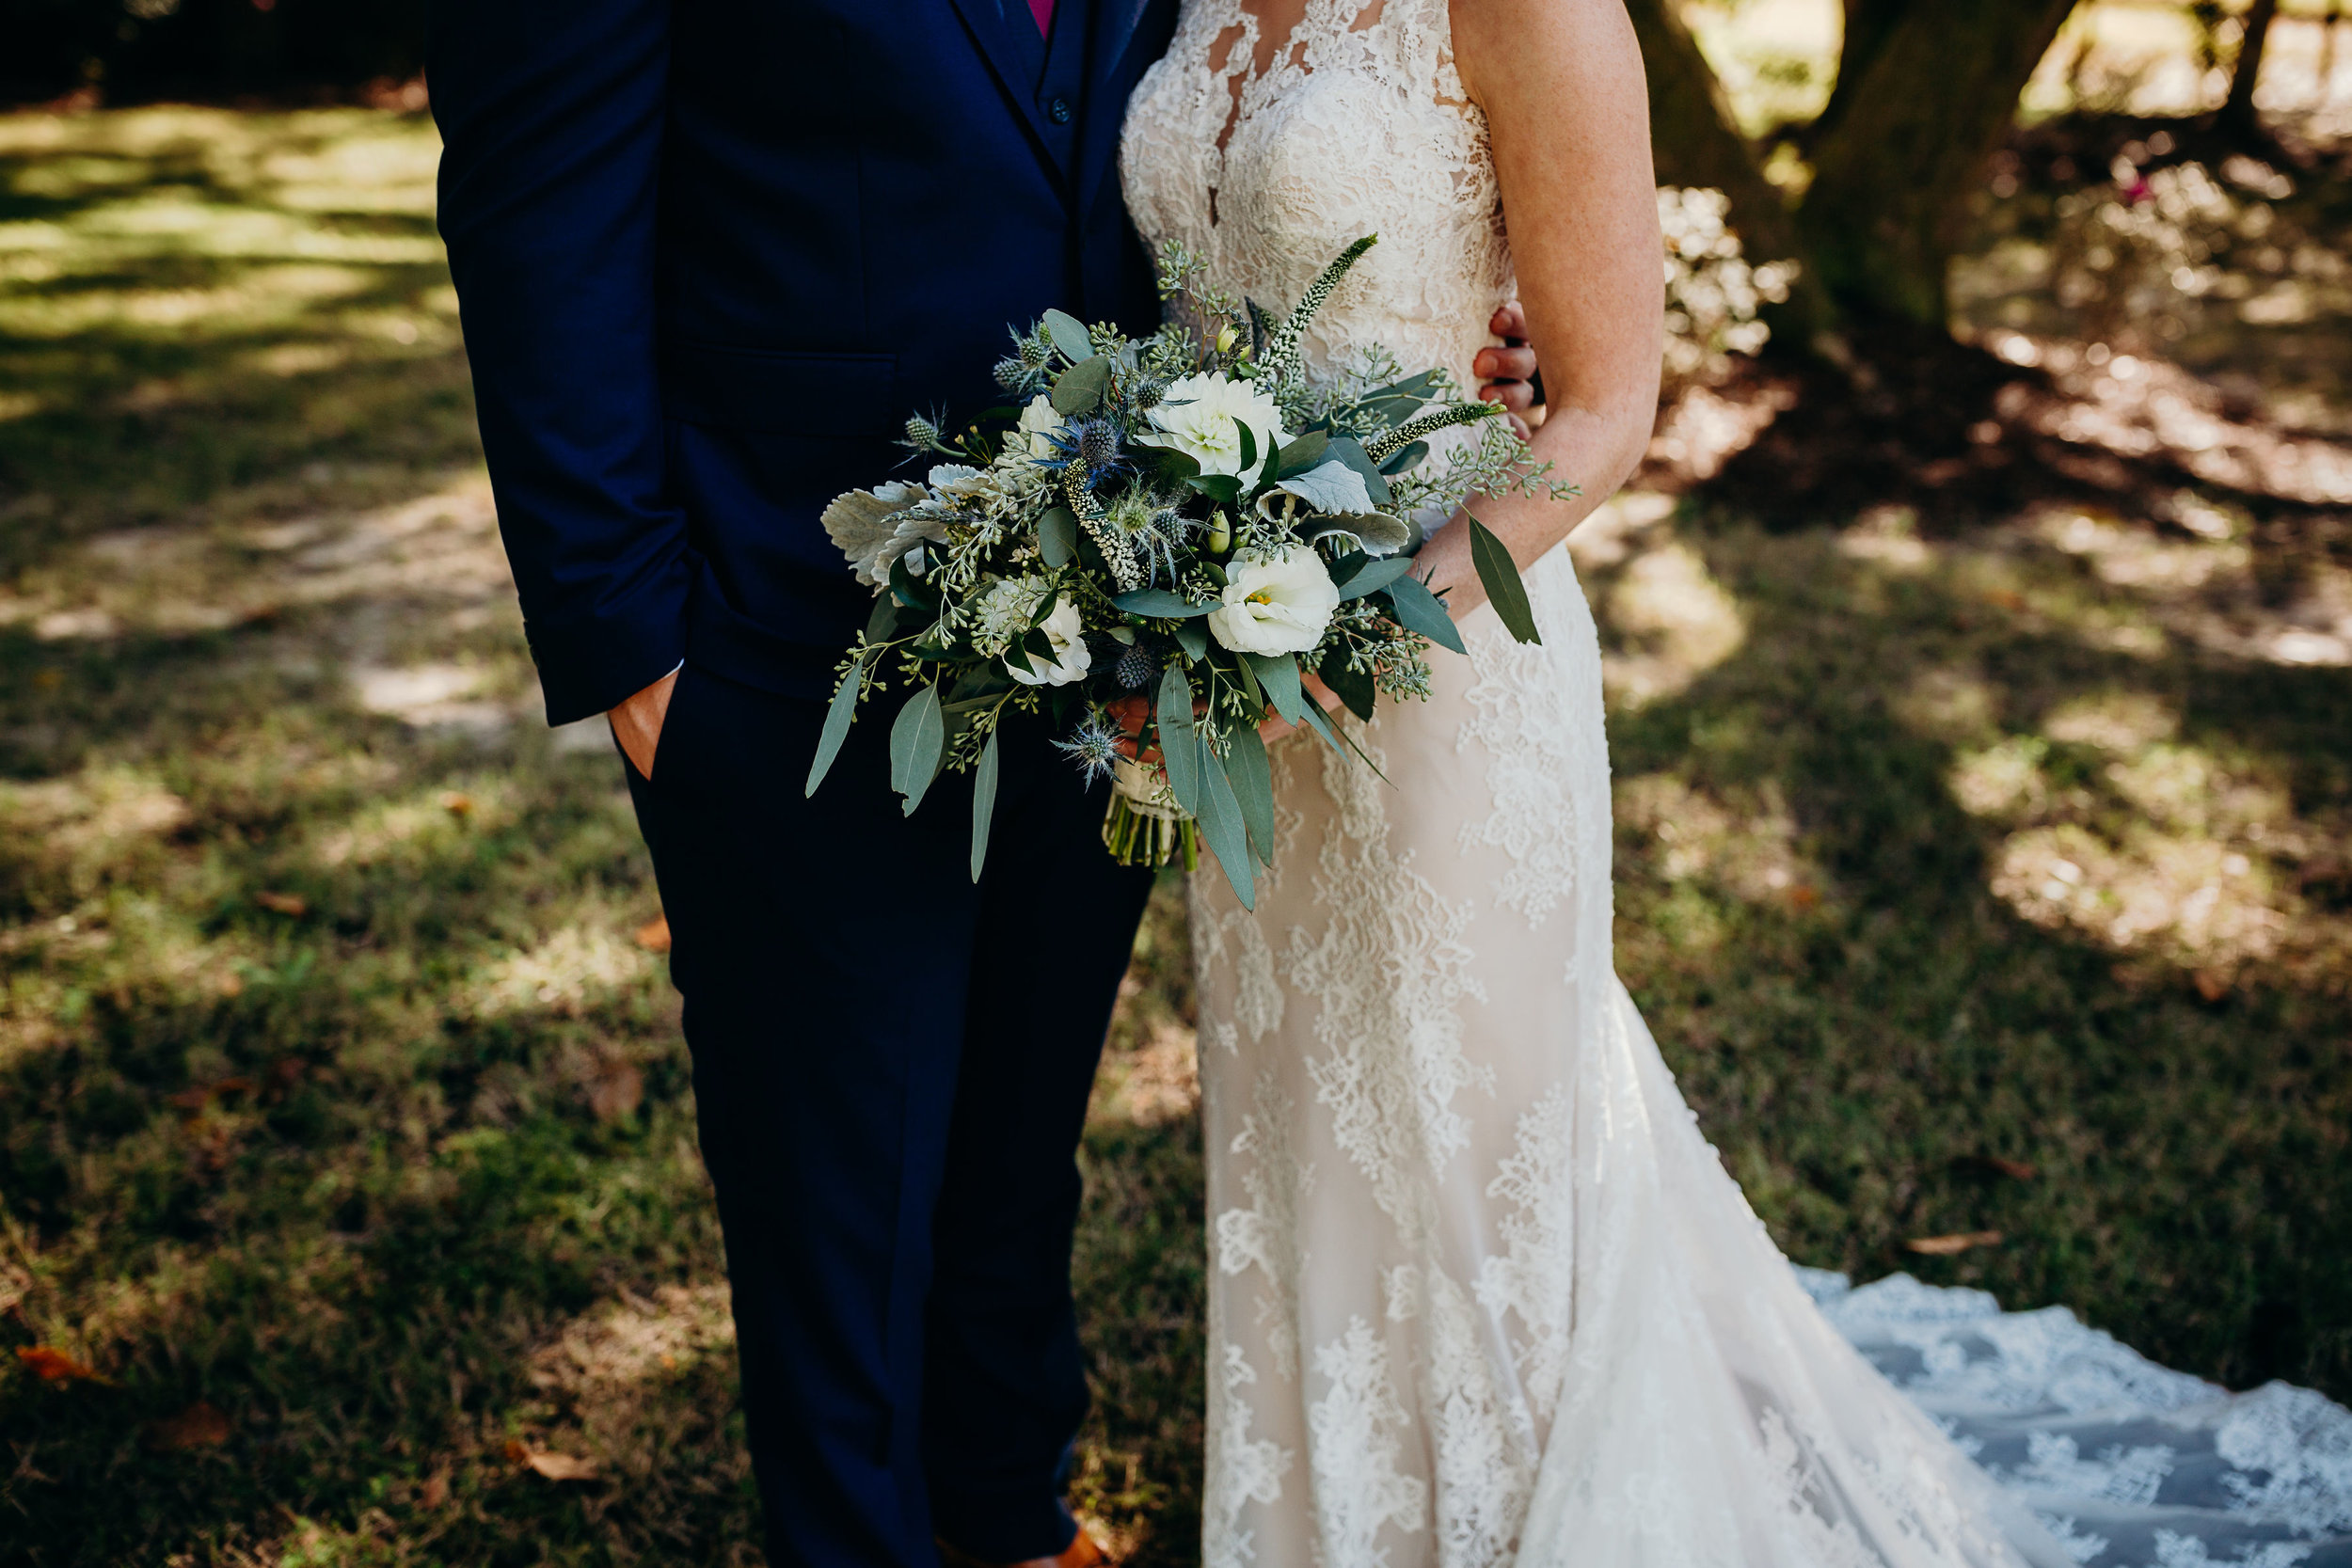 L+T,Married{MWP}-120.jpg